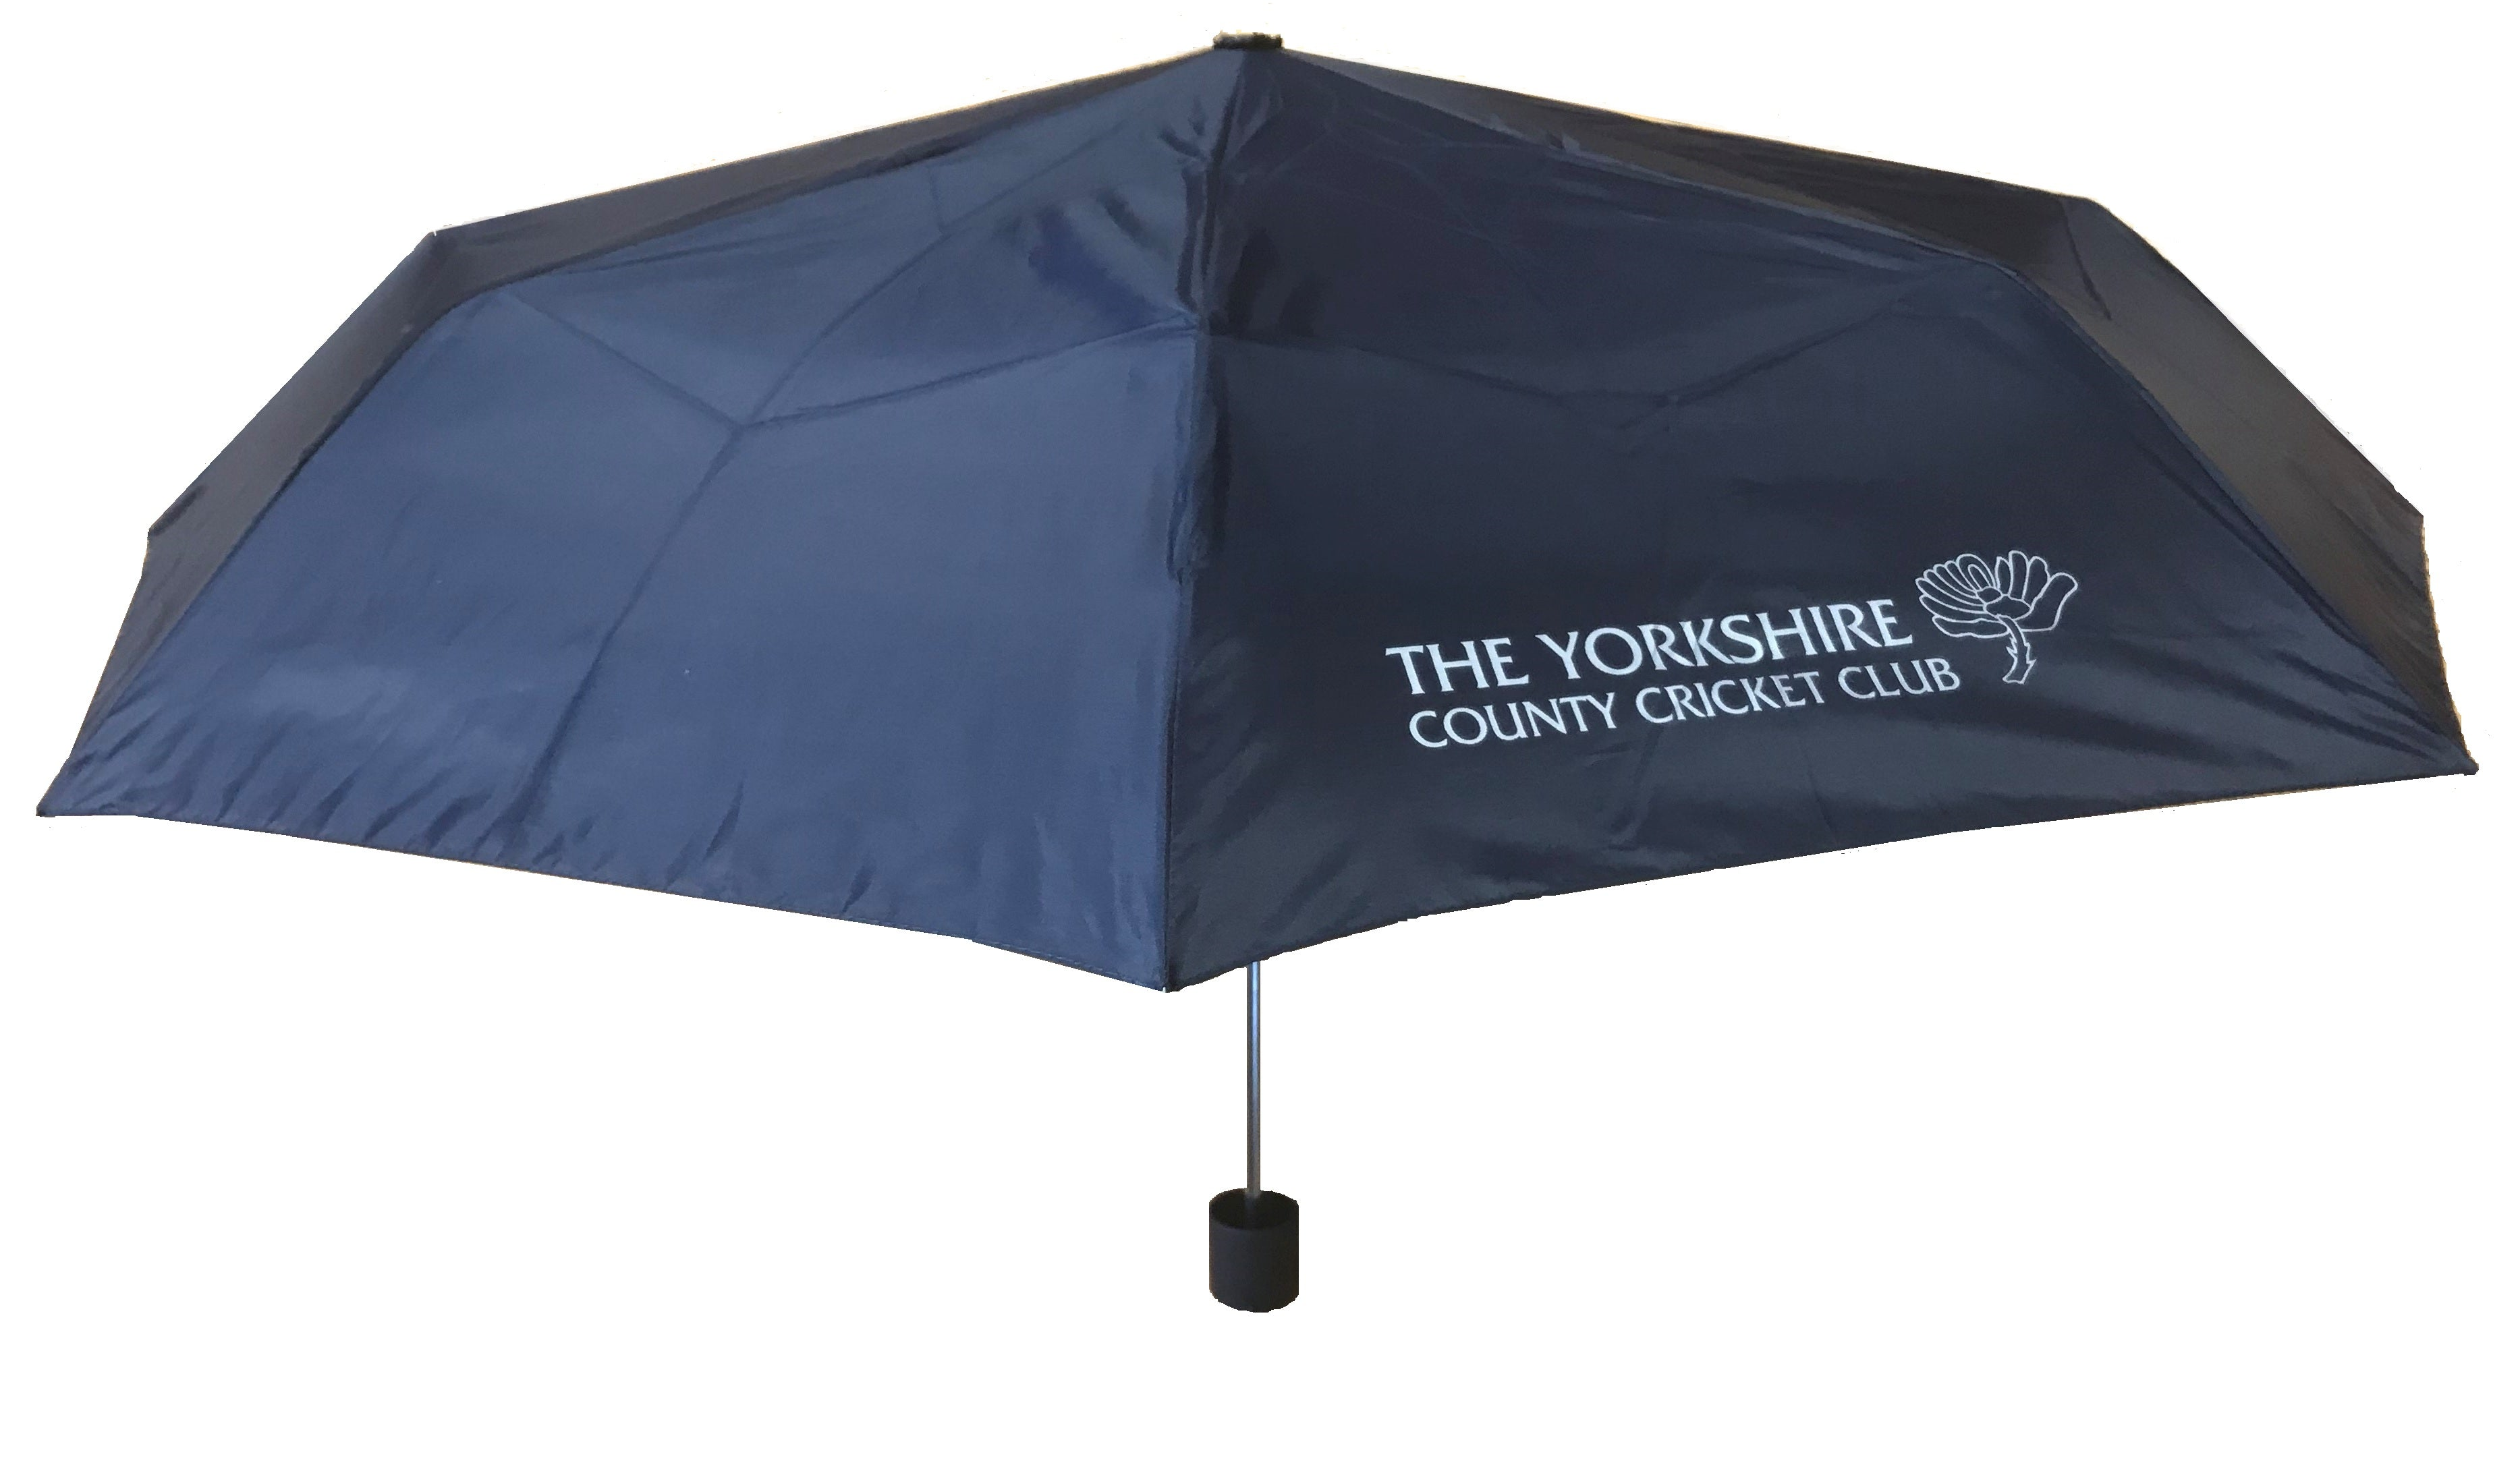 YCCC Ladies Umbrella